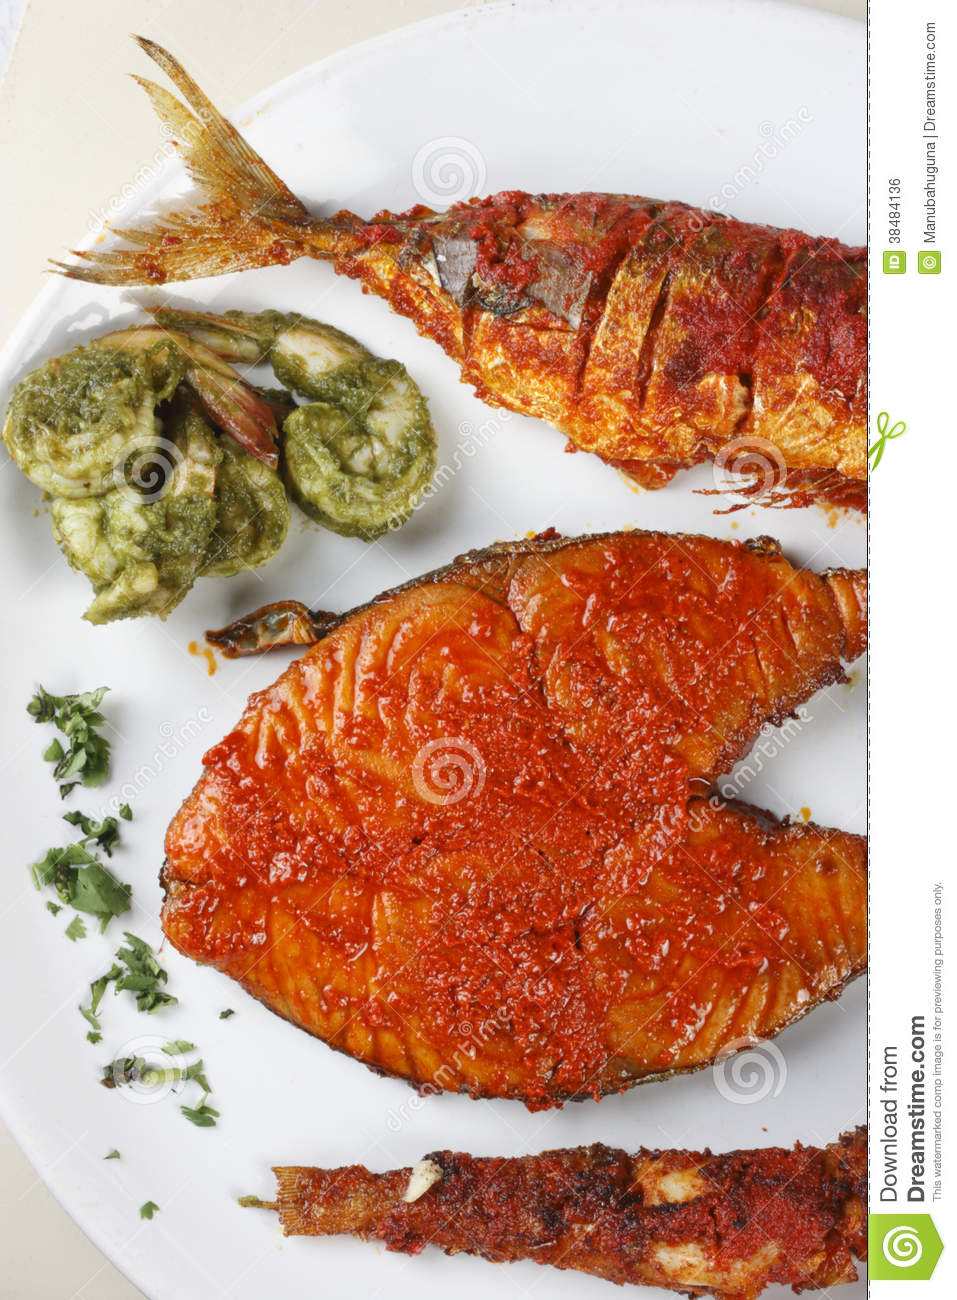 seafood business plan in india